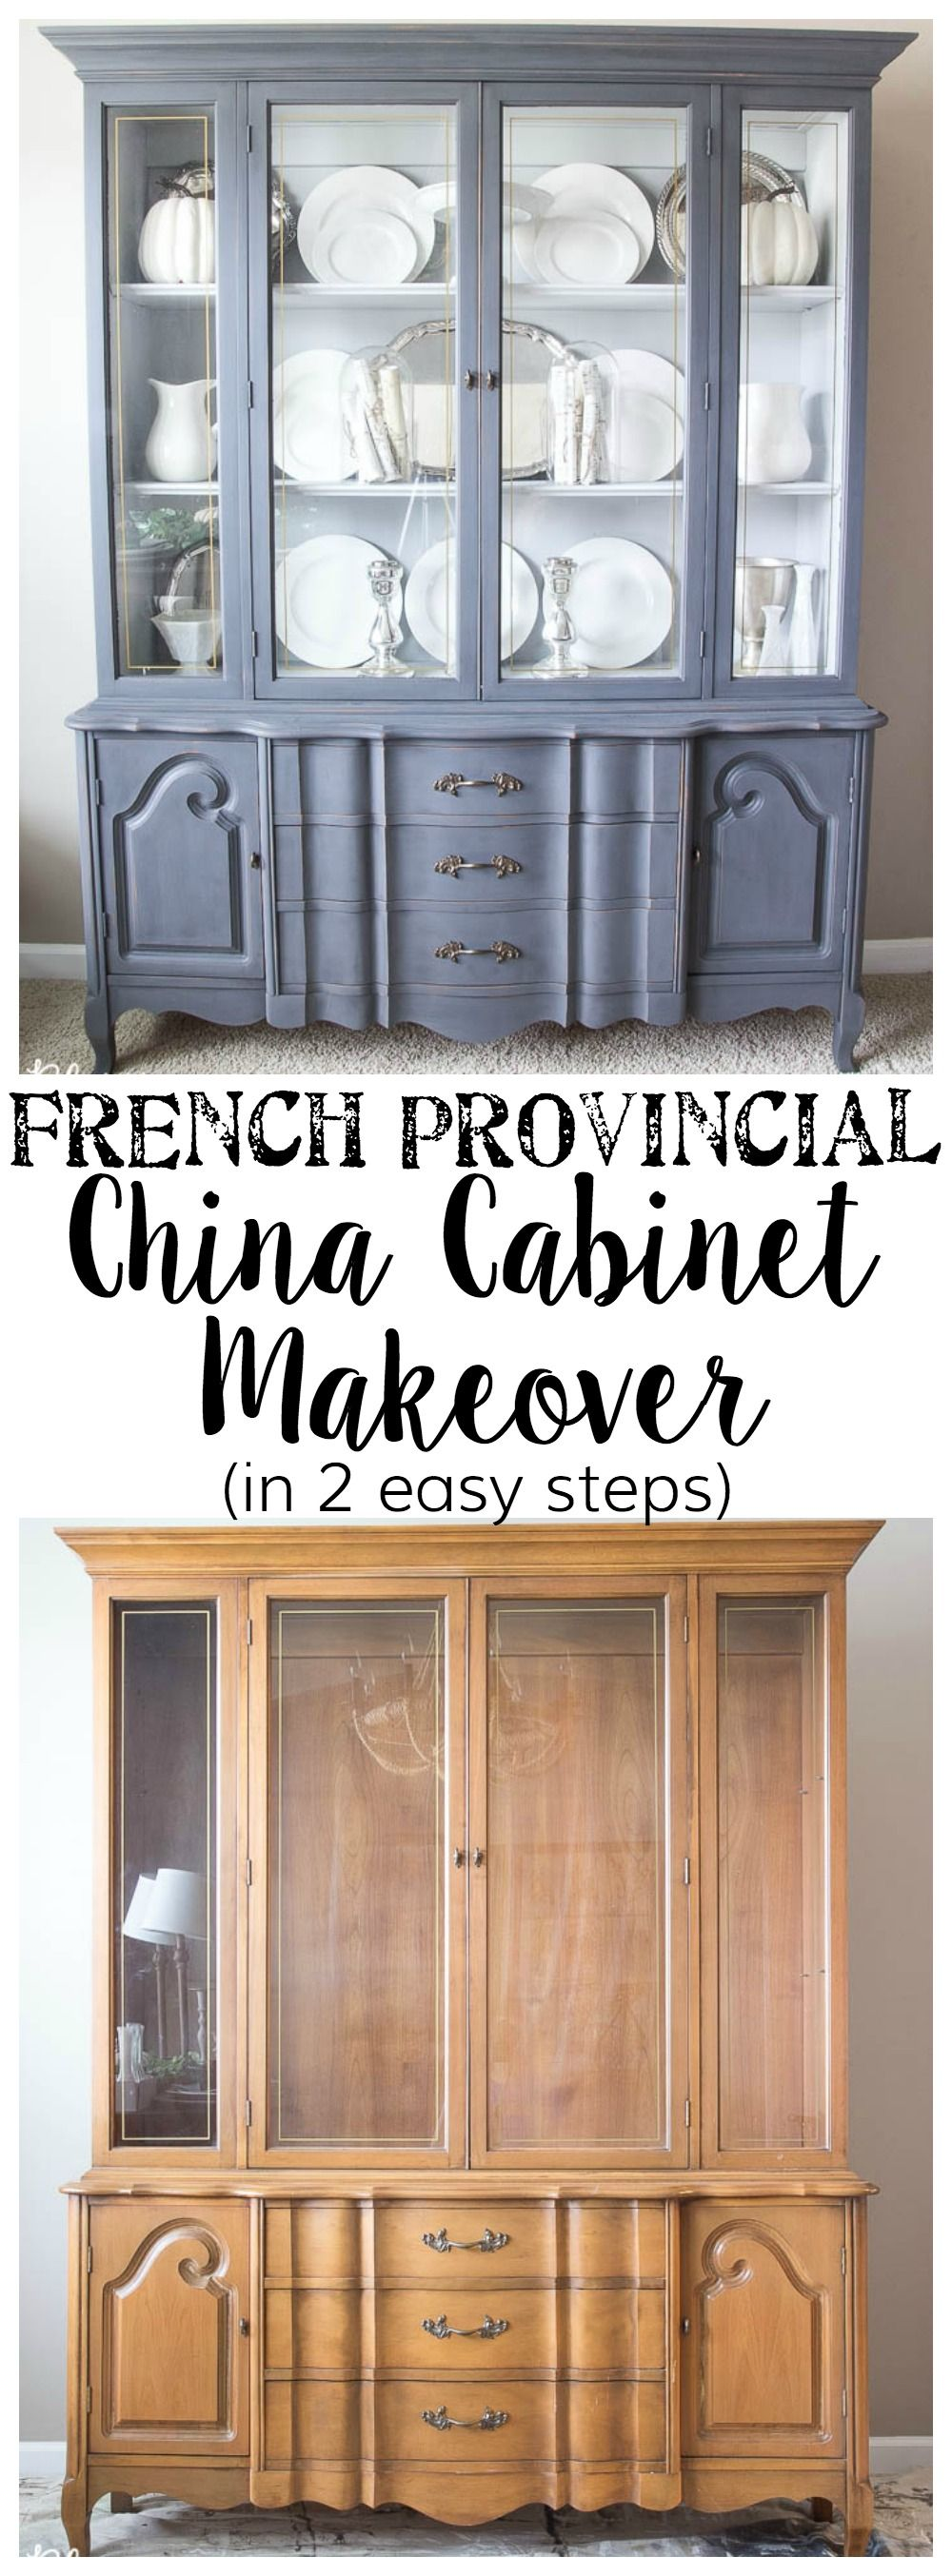 french provincial china cabinet makeover aus alt mach. Black Bedroom Furniture Sets. Home Design Ideas